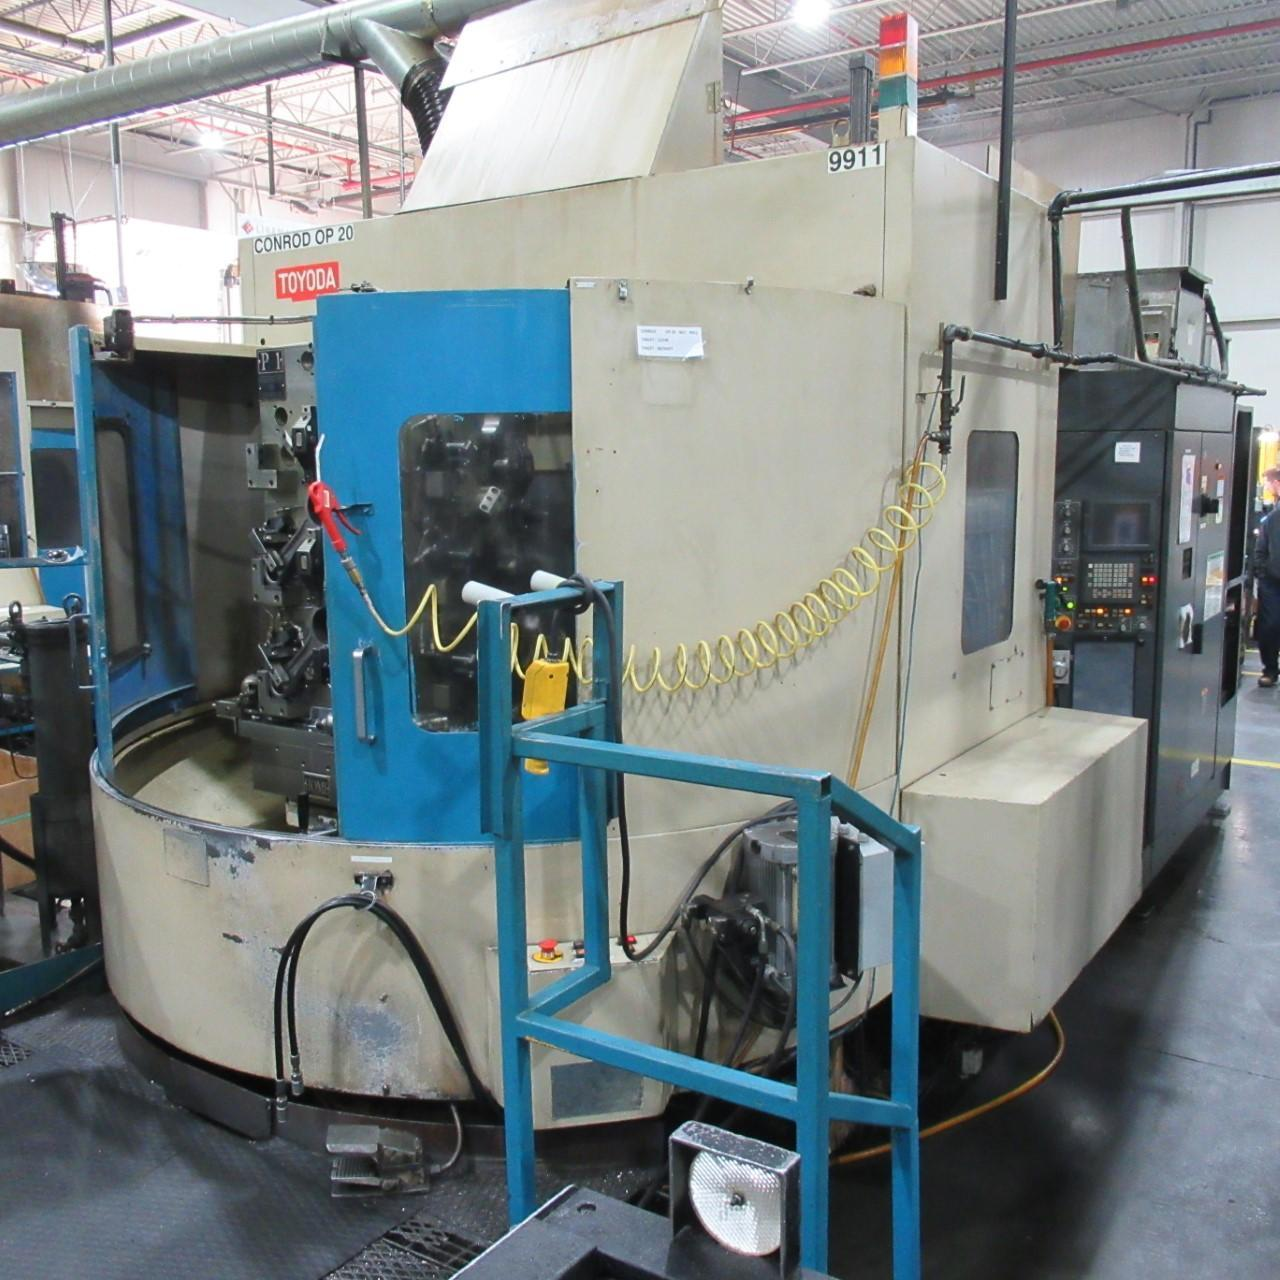 TOYODA FA-630 HORIZONTAL MACHINING CENTER, HIGH PRESSURE THROUGH SPINDLE COOLANT, YEAR 2003